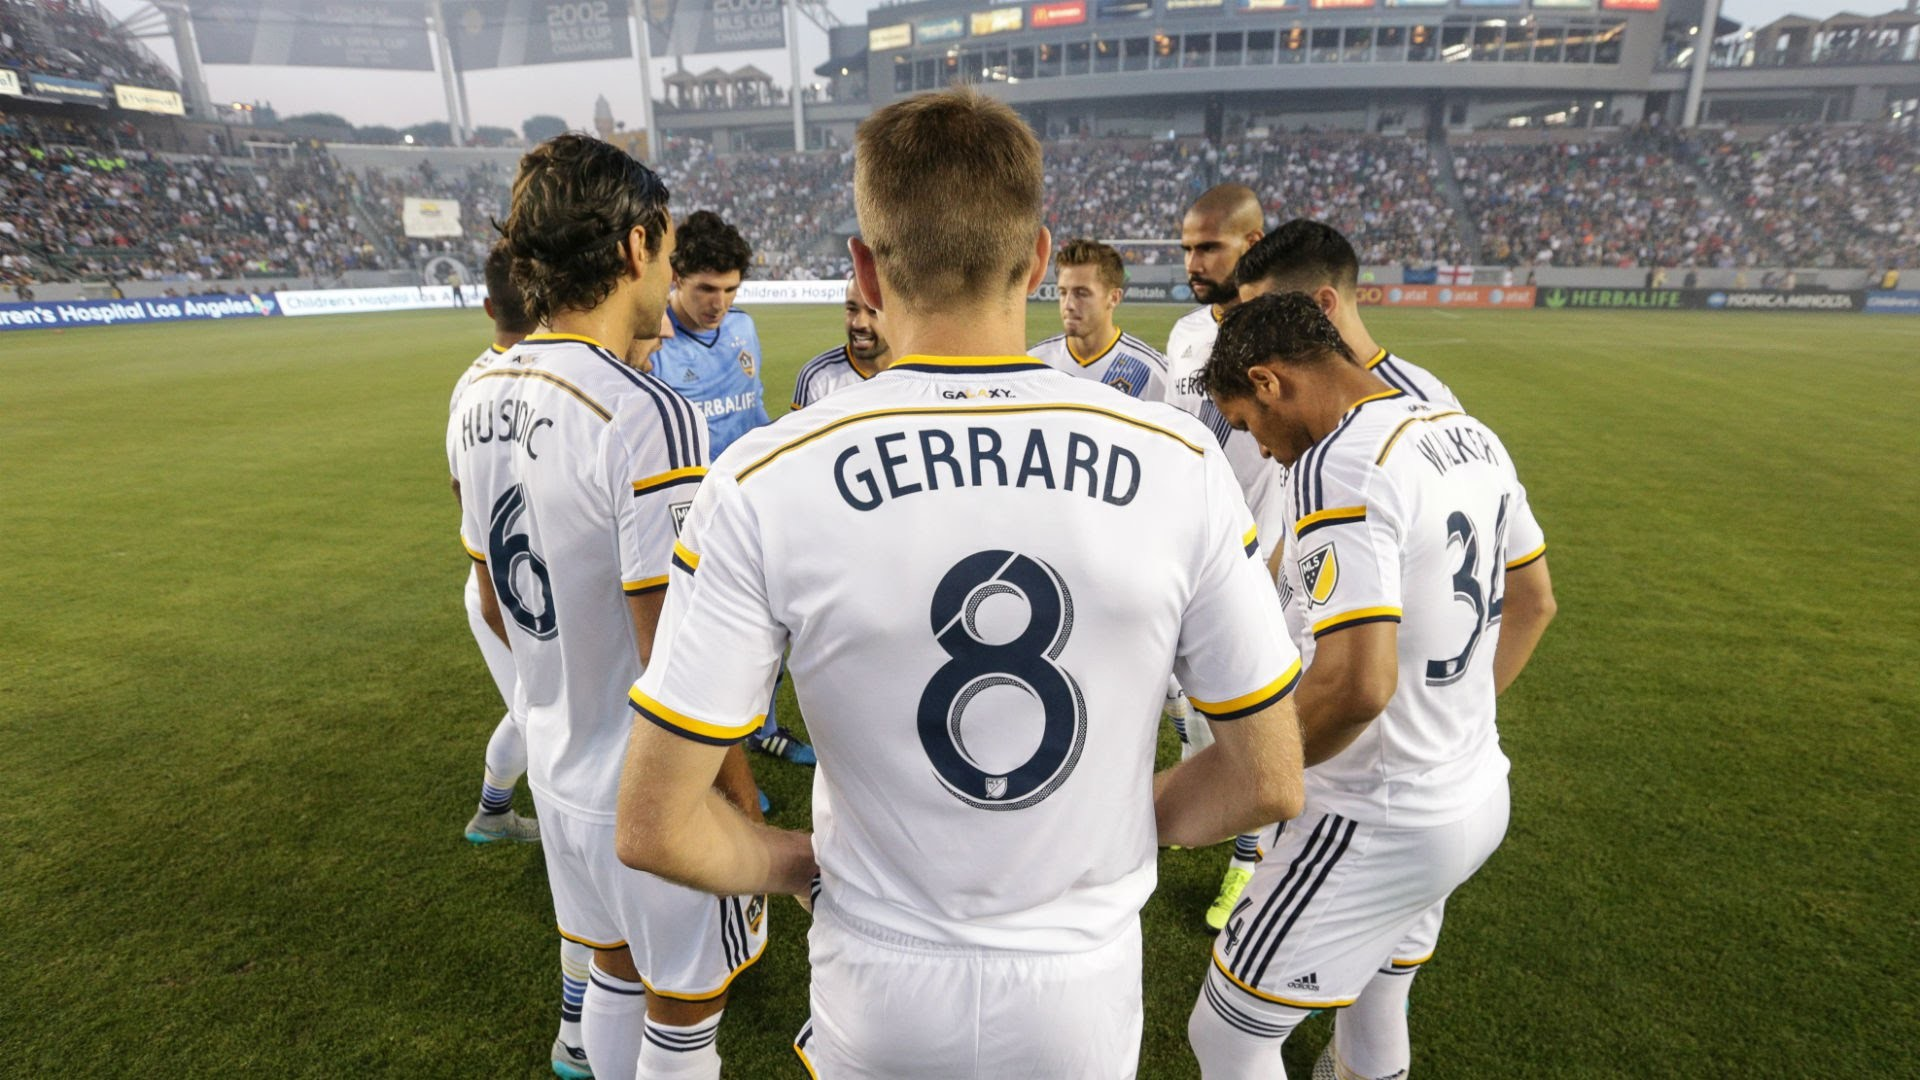 Res: 1920x1080, On this day in 2015: Steven Gerrard made his MLS debut for the LA Galaxy